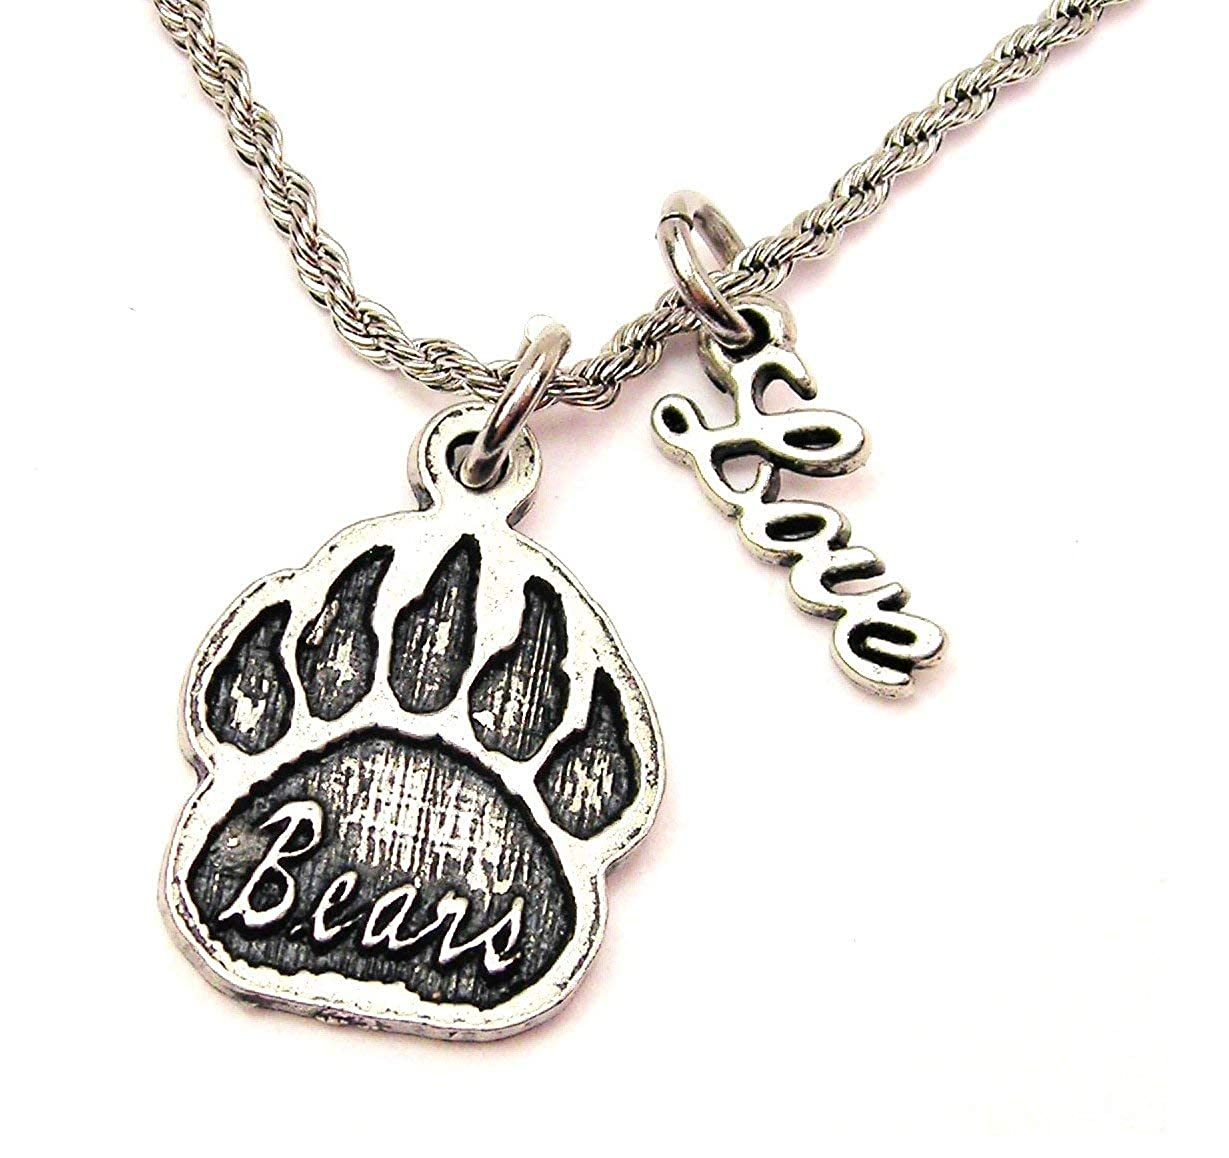 ChubbyChicoCharms Bears Paw Print Stainless Steel Rope Chain Necklace with Cursive Love Accent